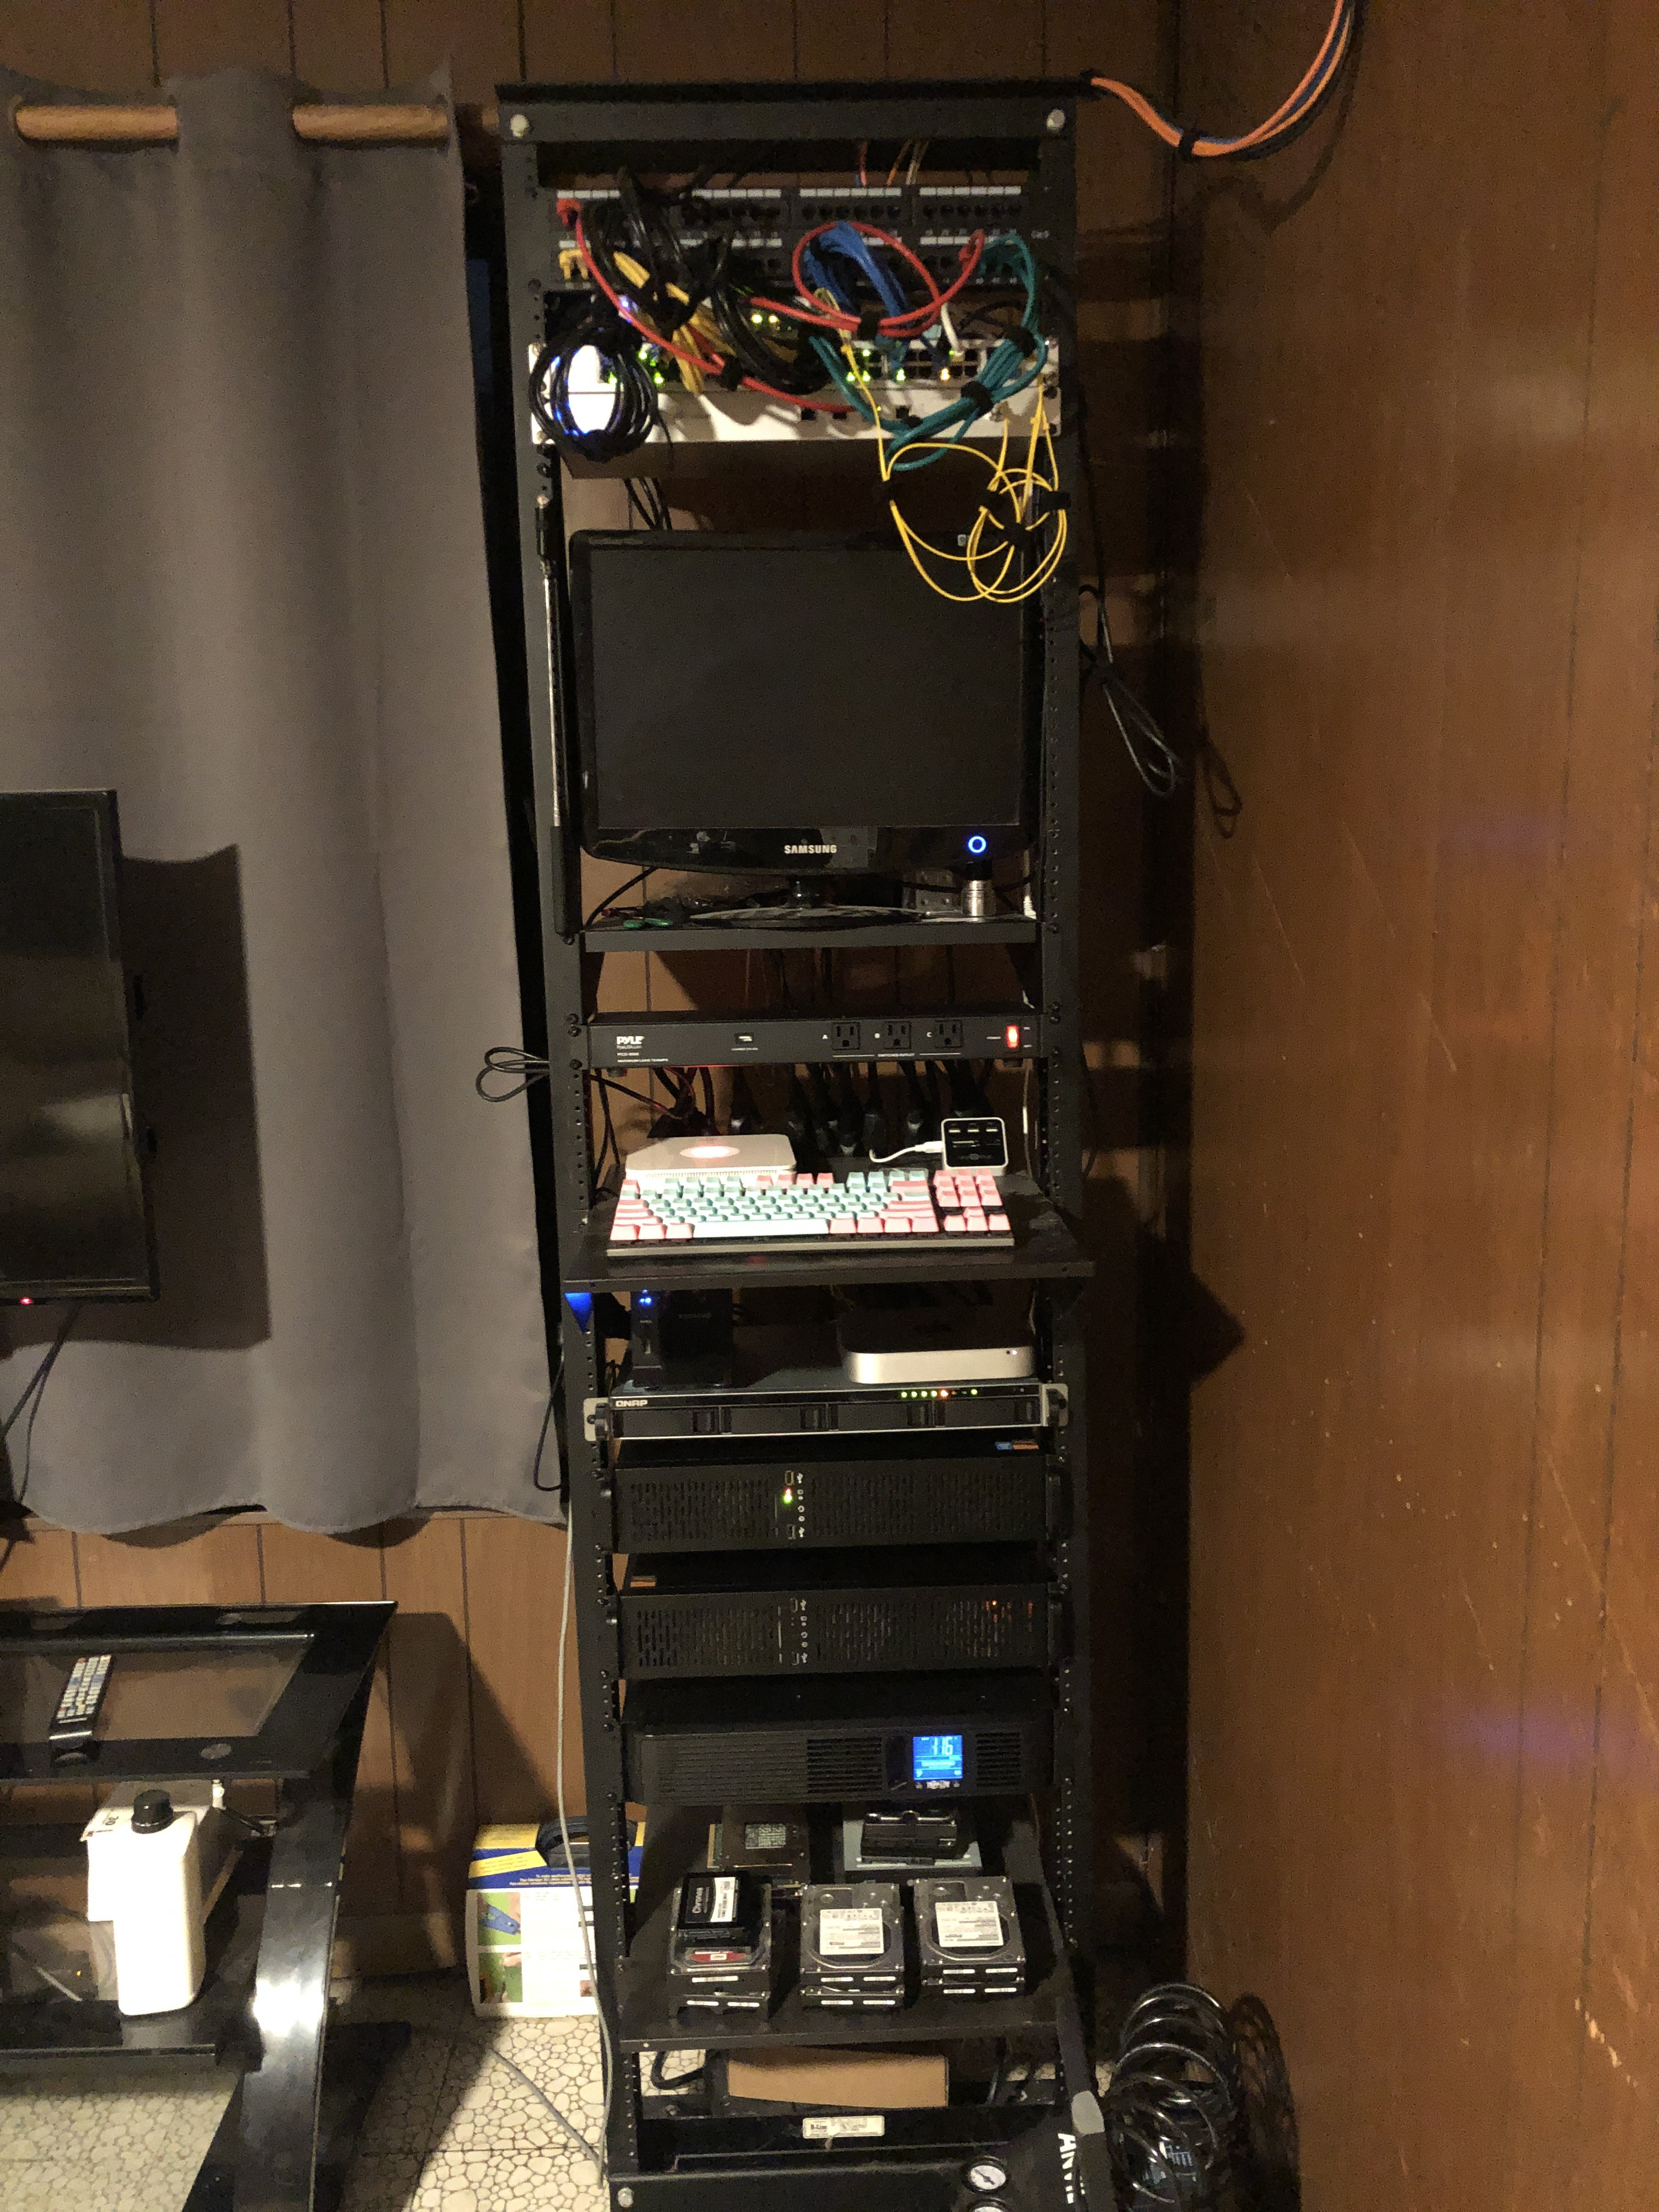 Show off your homelab! | Page 2 | TechPowerUp Forums